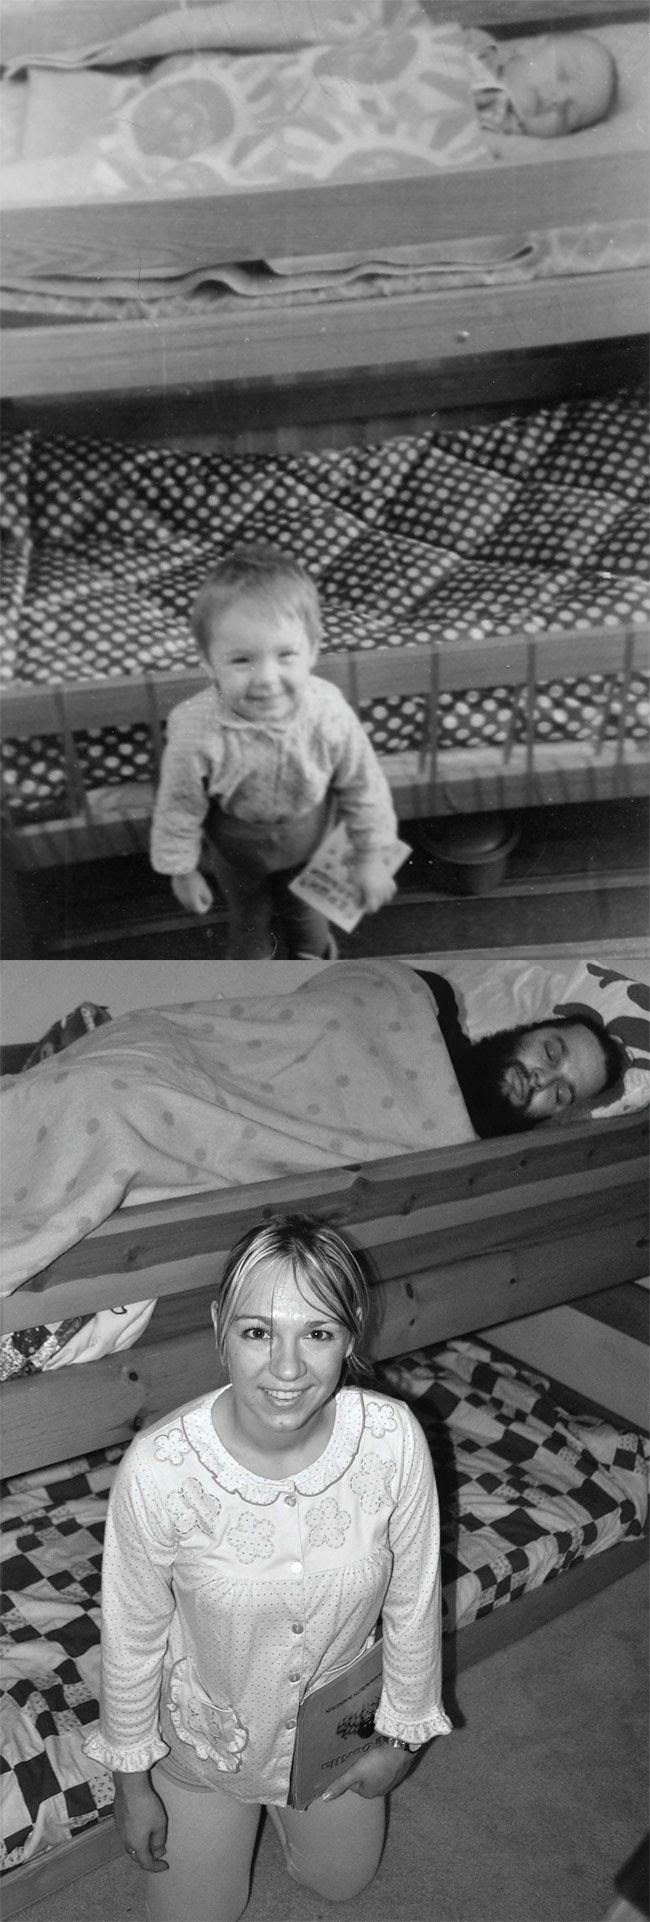 330 Amazing 12 page Calendar of Recreated Family Photos